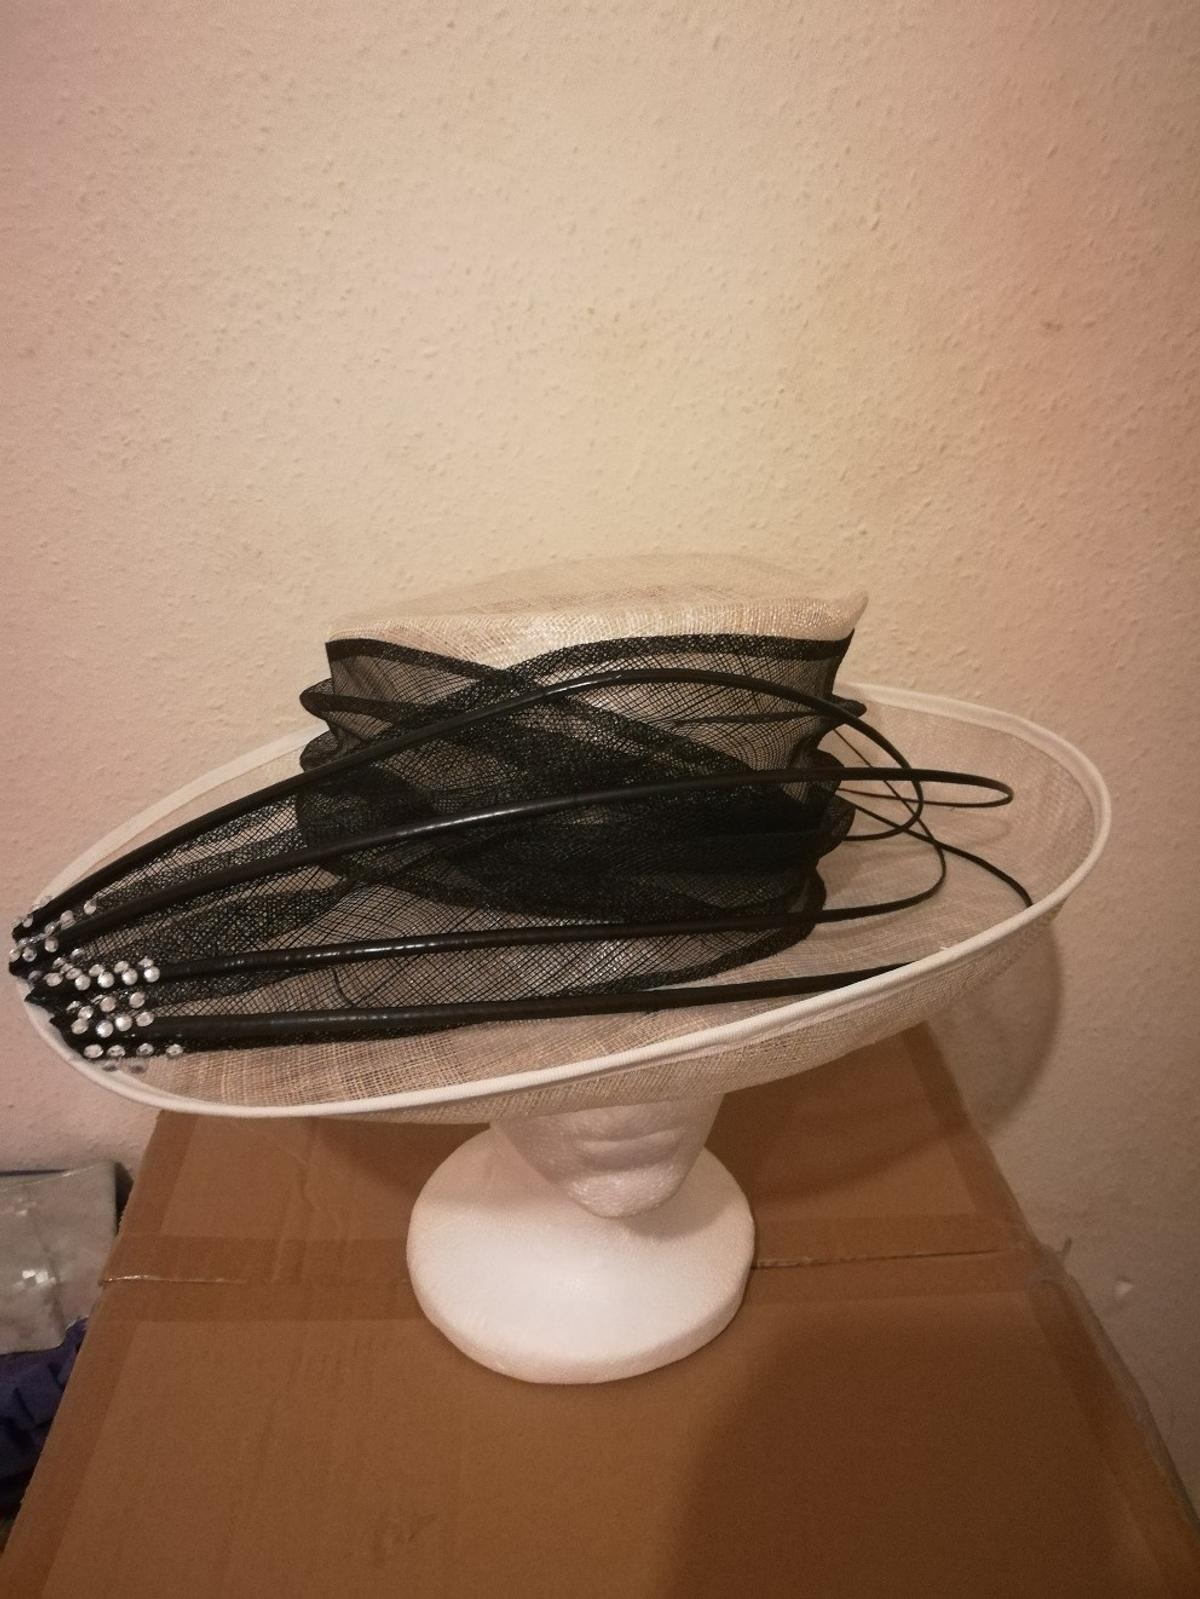 a7b8ecda0f34b occasion hats in black and ivory in RG2 Reading for £40.00 for sale ...